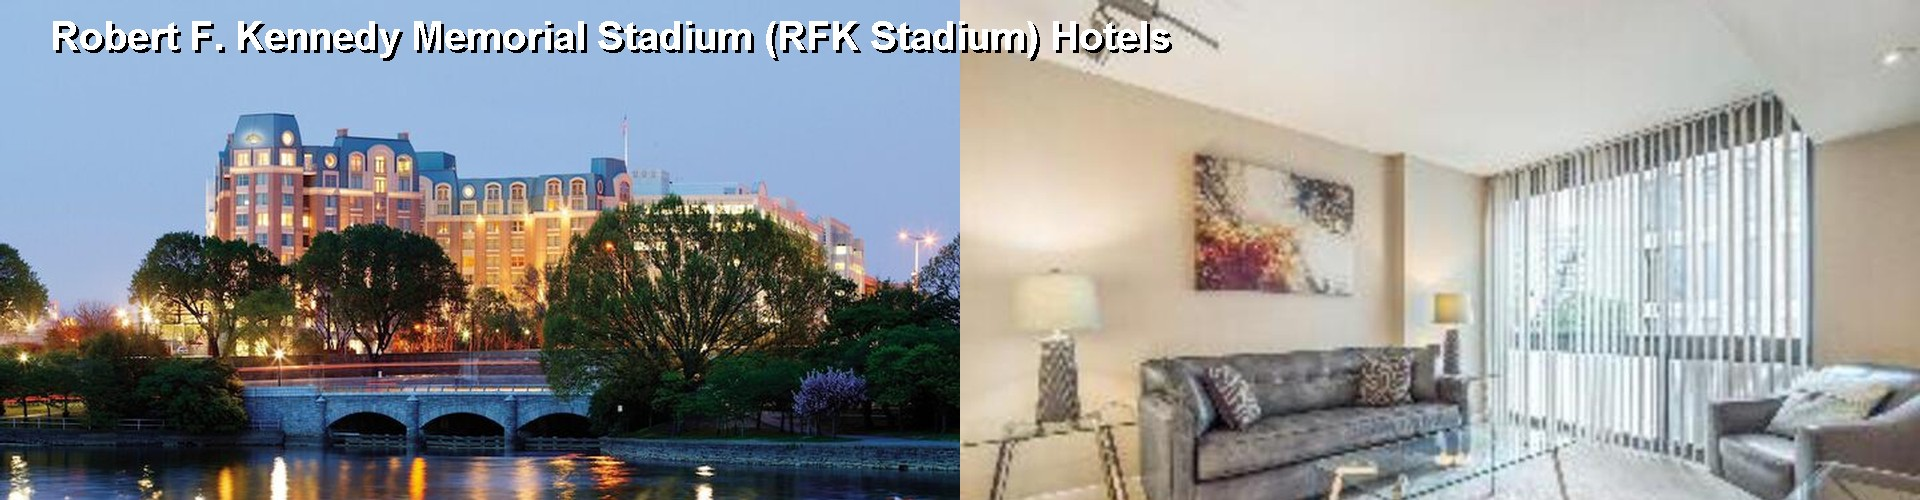 5 Best Hotels near Robert F. Kennedy Memorial Stadium (RFK Stadium)